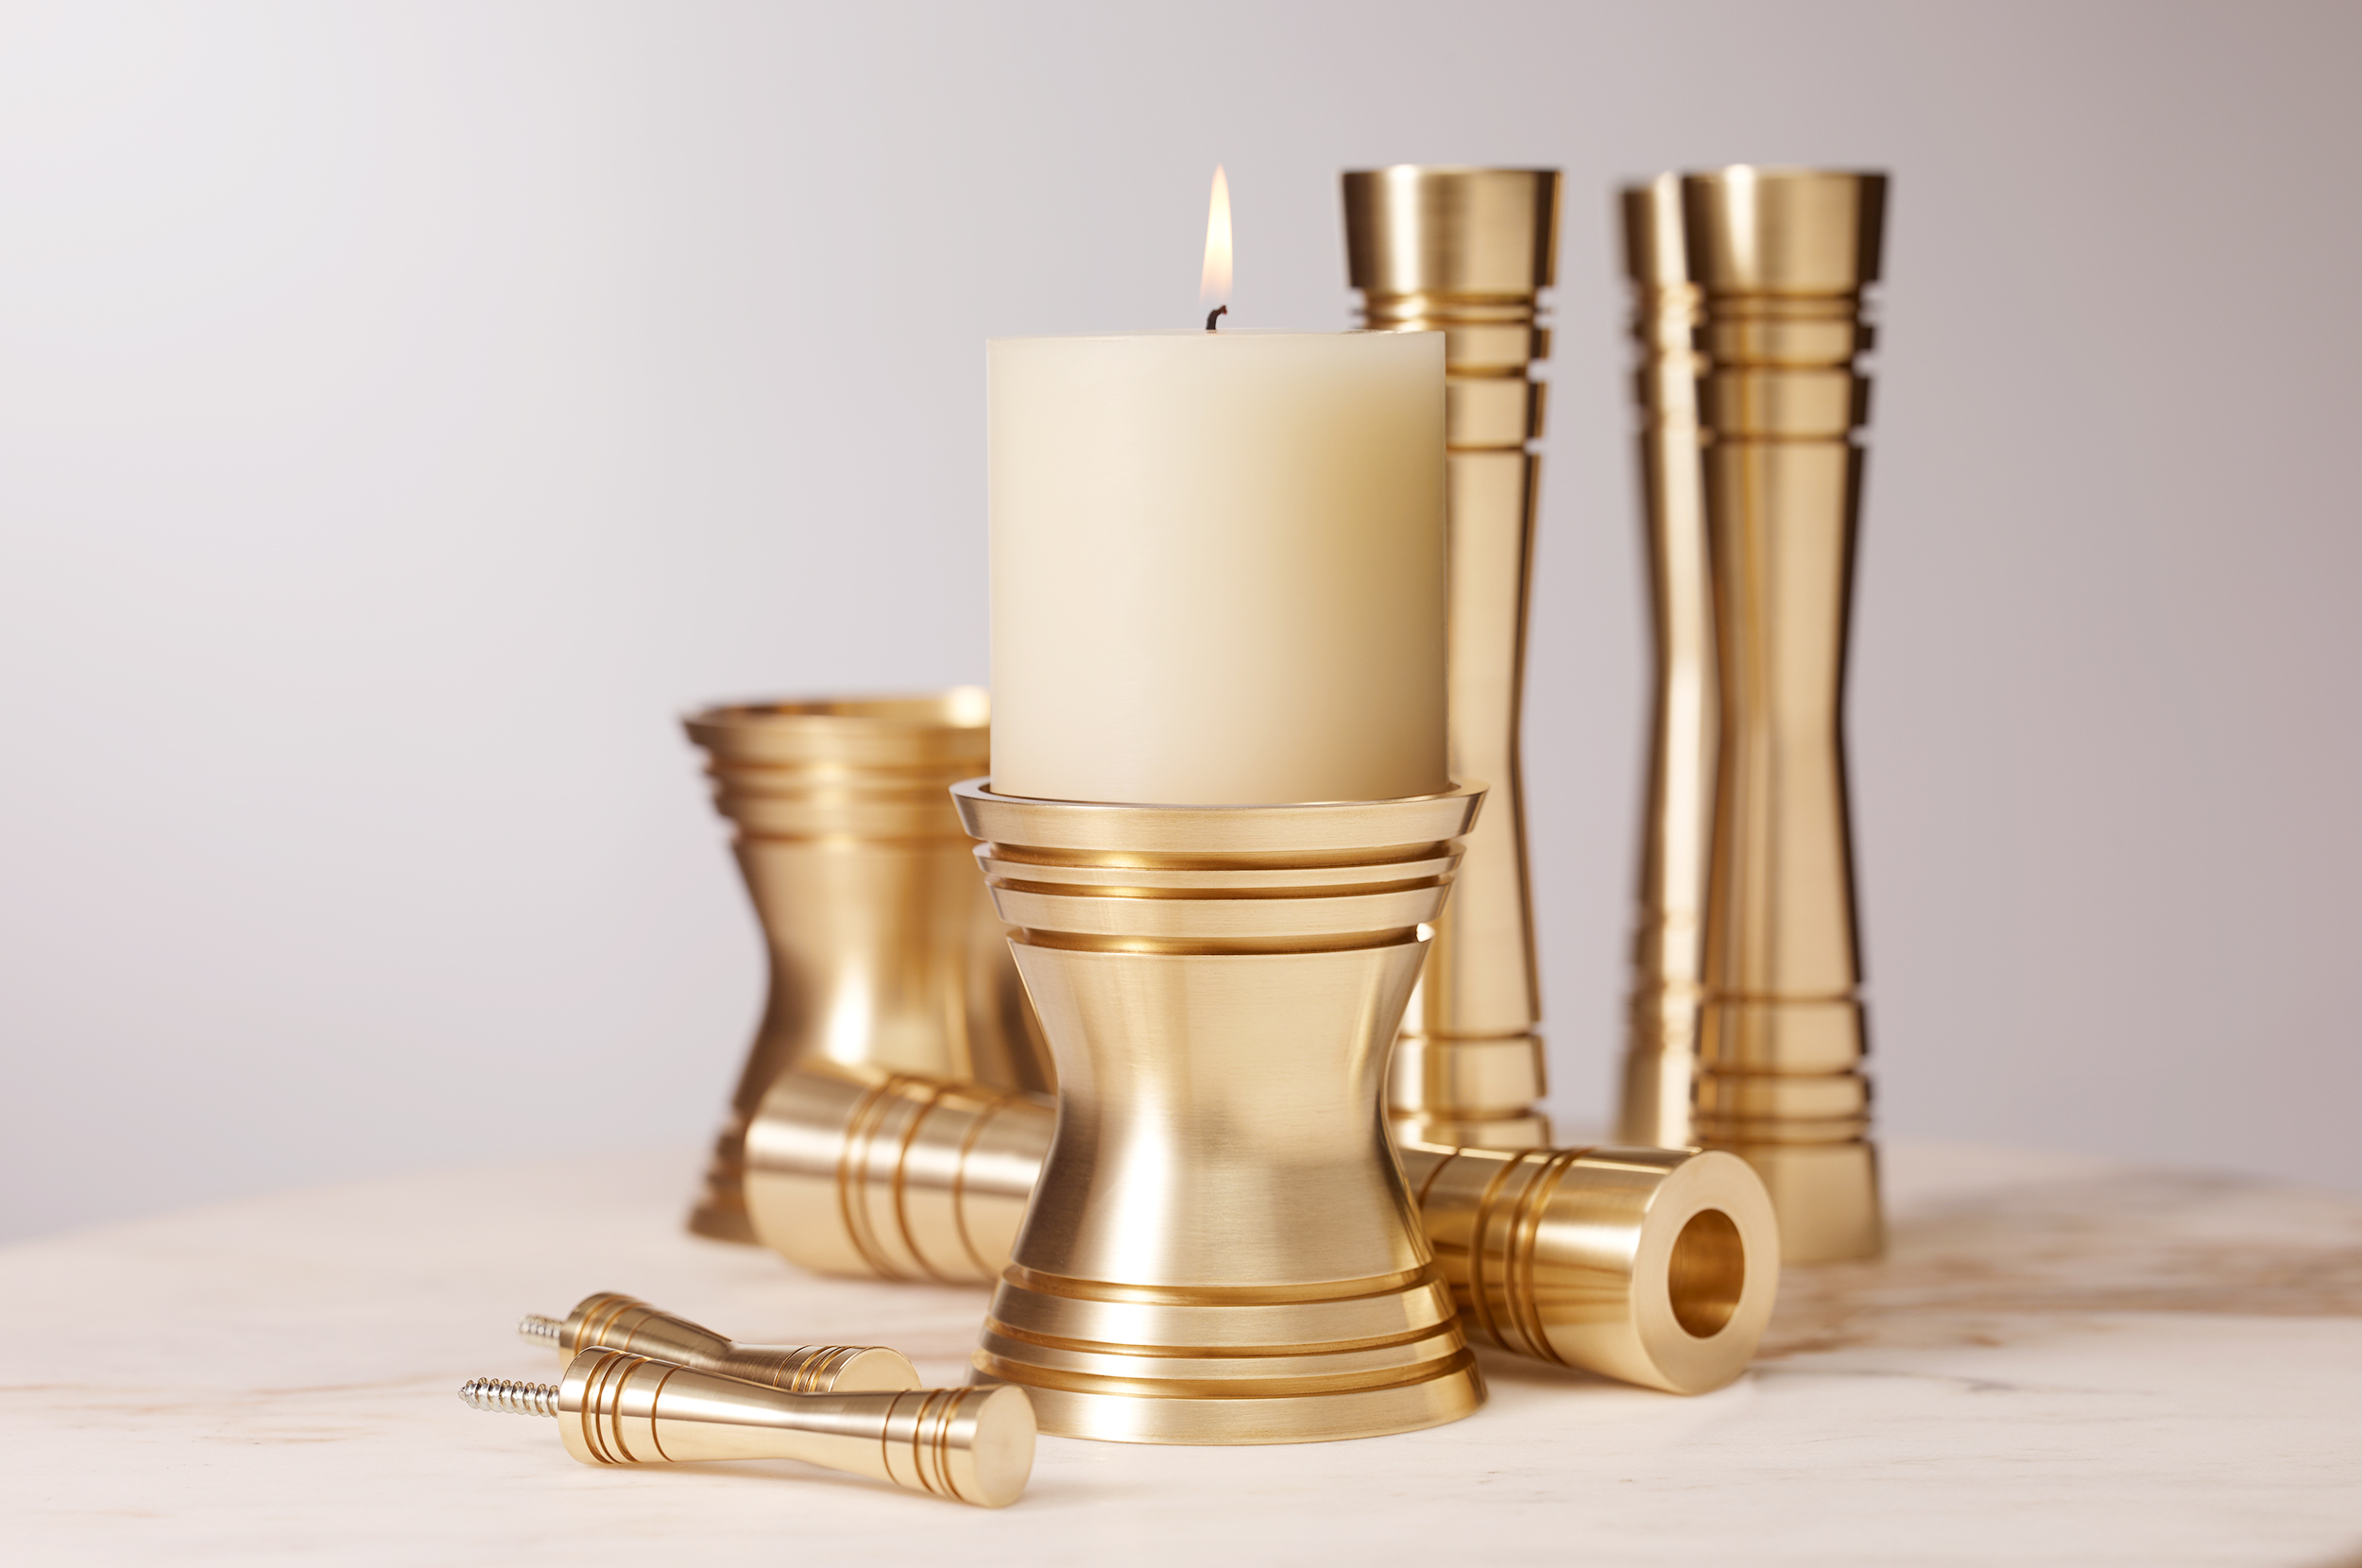 _170106 Post and Gleam table top Candle Holders Family 5 COMP R1 FL LR.jpg